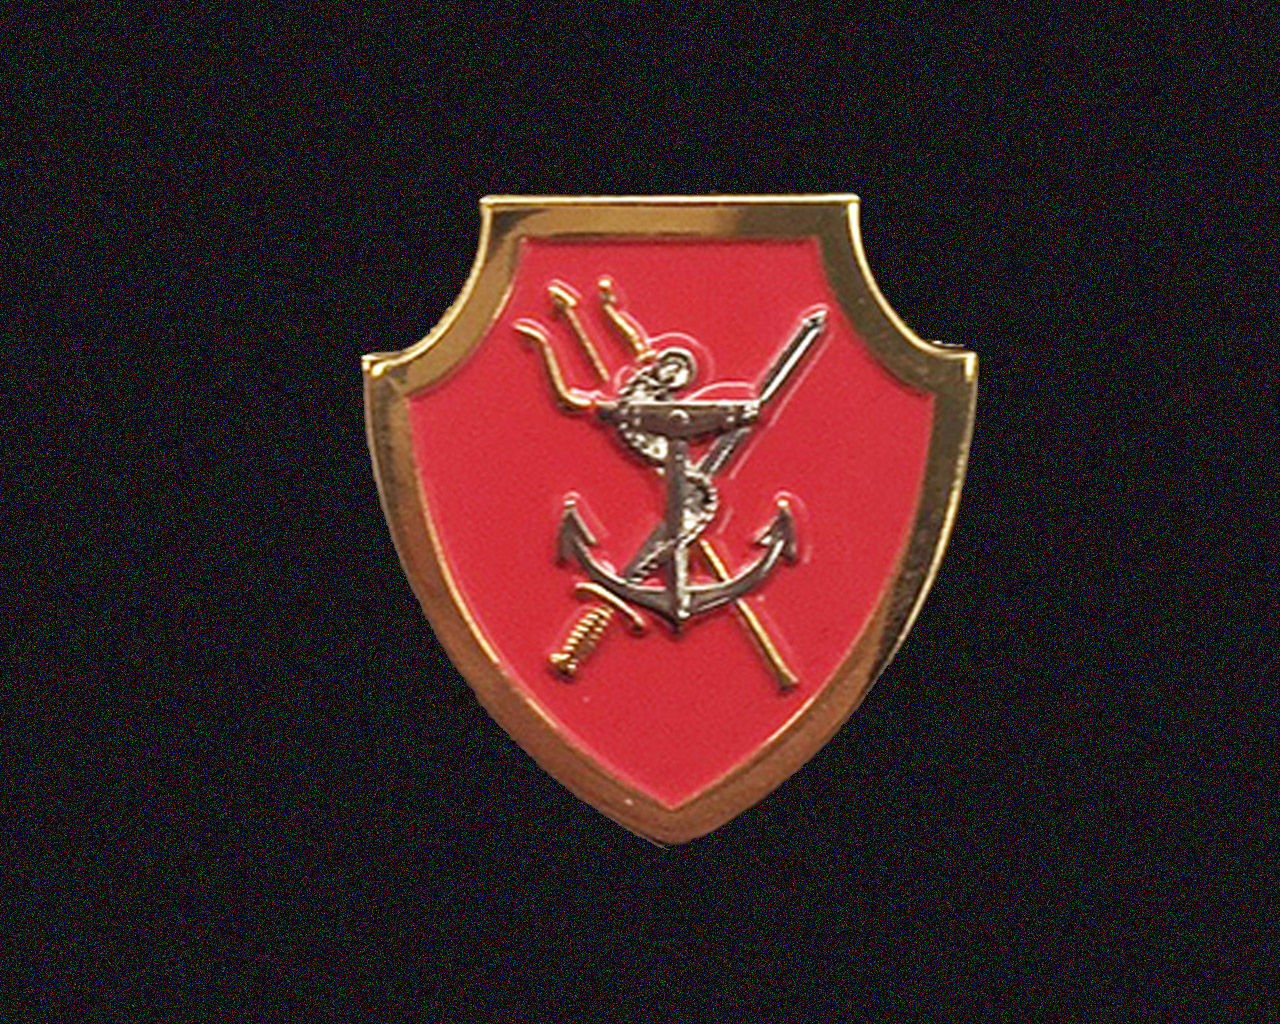 The NSTQ badge is a red shield bordered by gold trim 3 cm in height. A gold trident is crossed with a naval cutlass with a silver fouled anchor in the foreground.